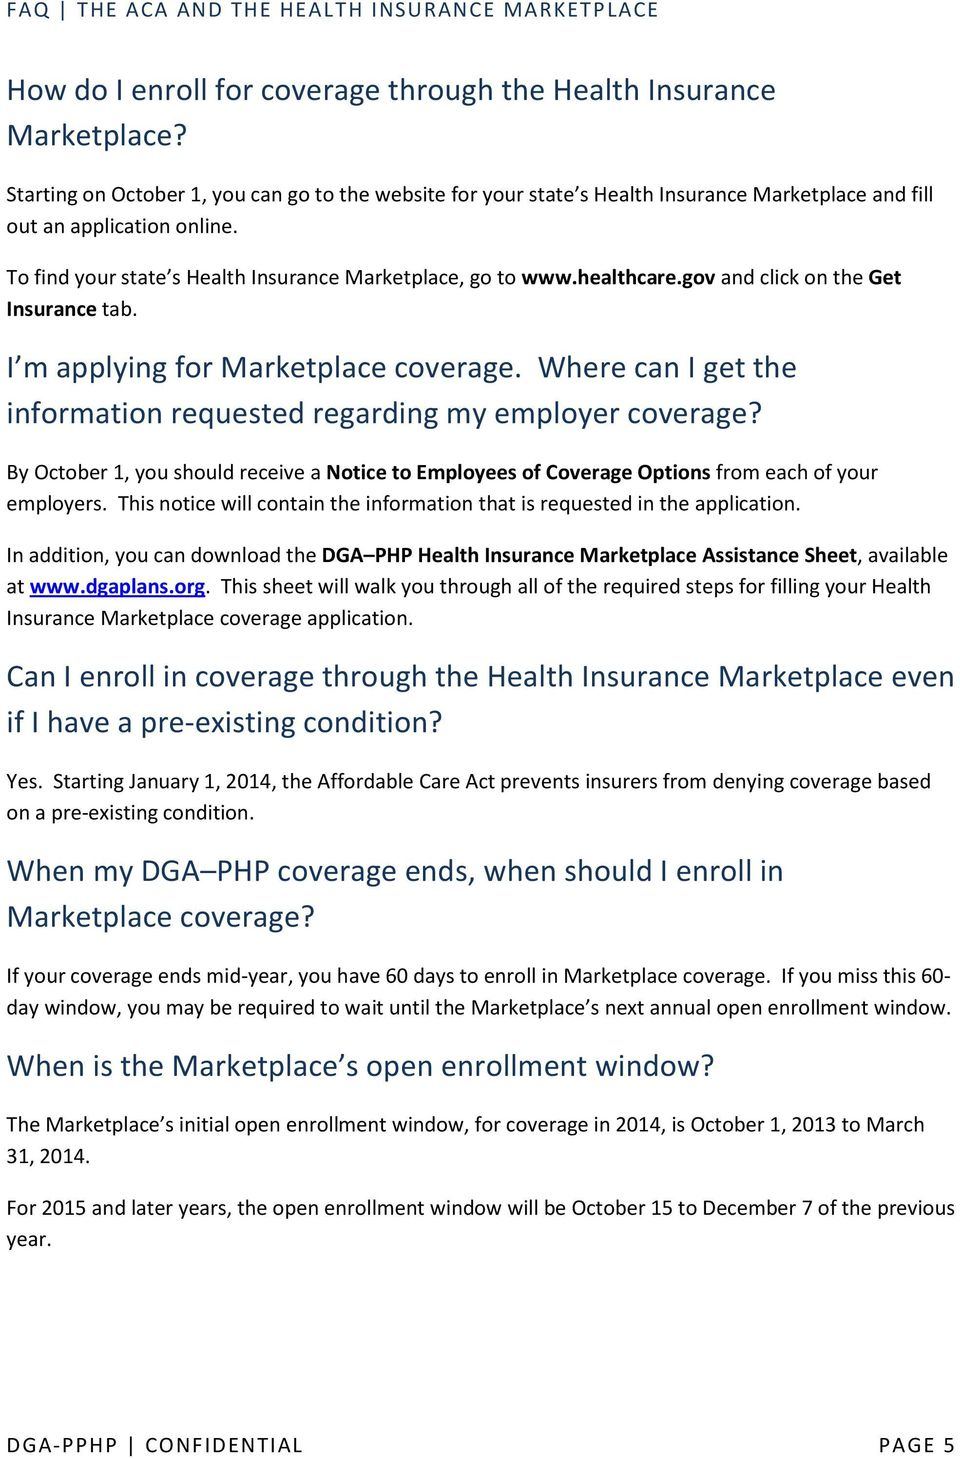 healthcare.gov and click on the Get Insurance tab. I m applying for Marketplace coverage. Where can I get the information requested regarding my employer coverage?